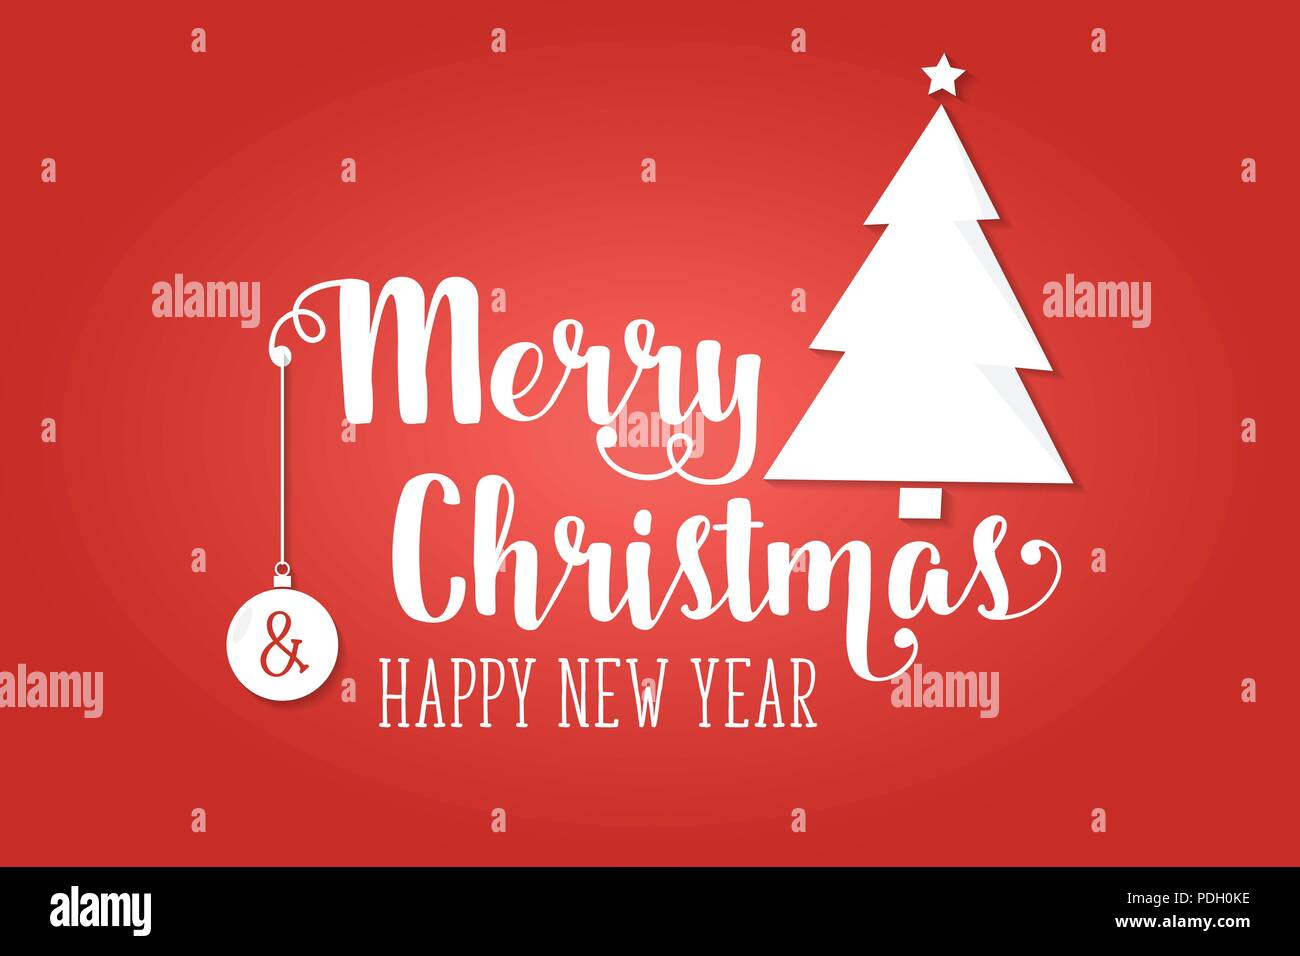 merry christmas greeting card vector illustration xmas design for